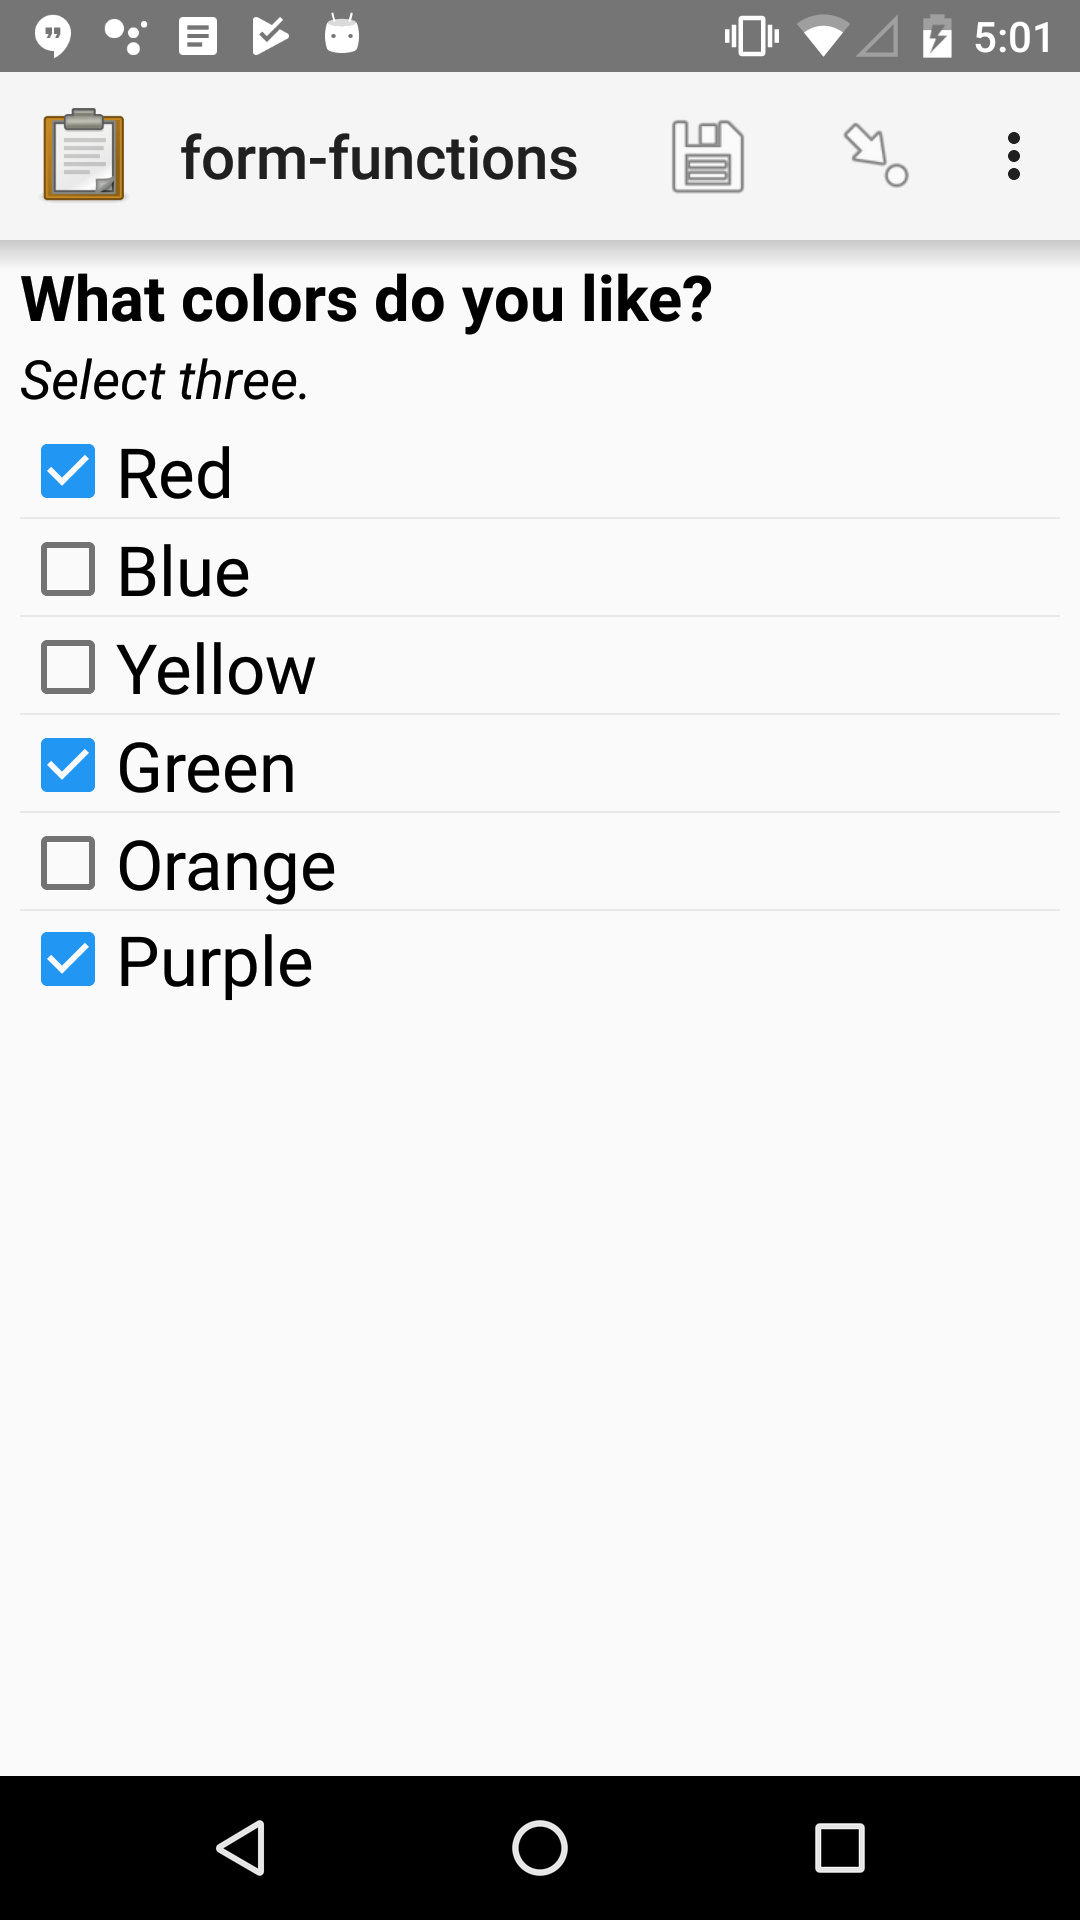 "A multi-select widget in Collect. The label is ""What colors do you like?"" Several color names are presented as options. Red, Green, and Purple are selected."